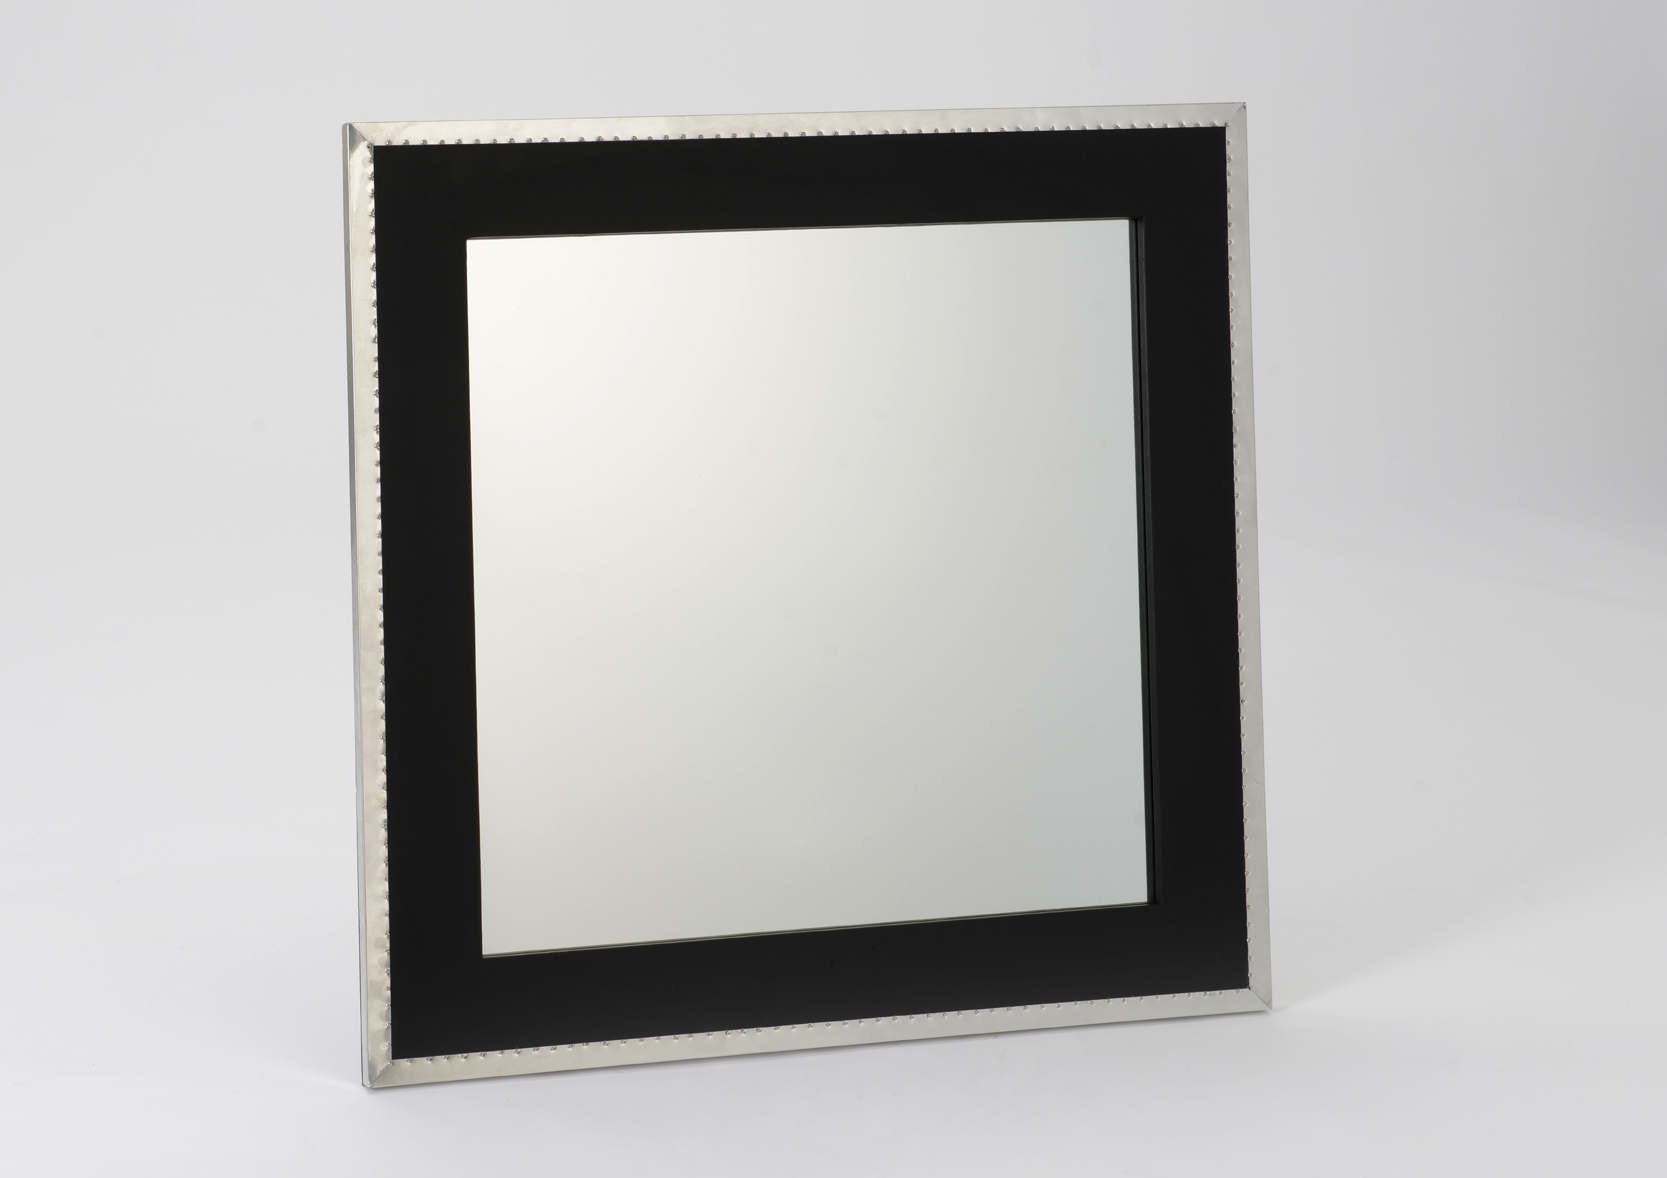 miroir carr 121959 box33creation